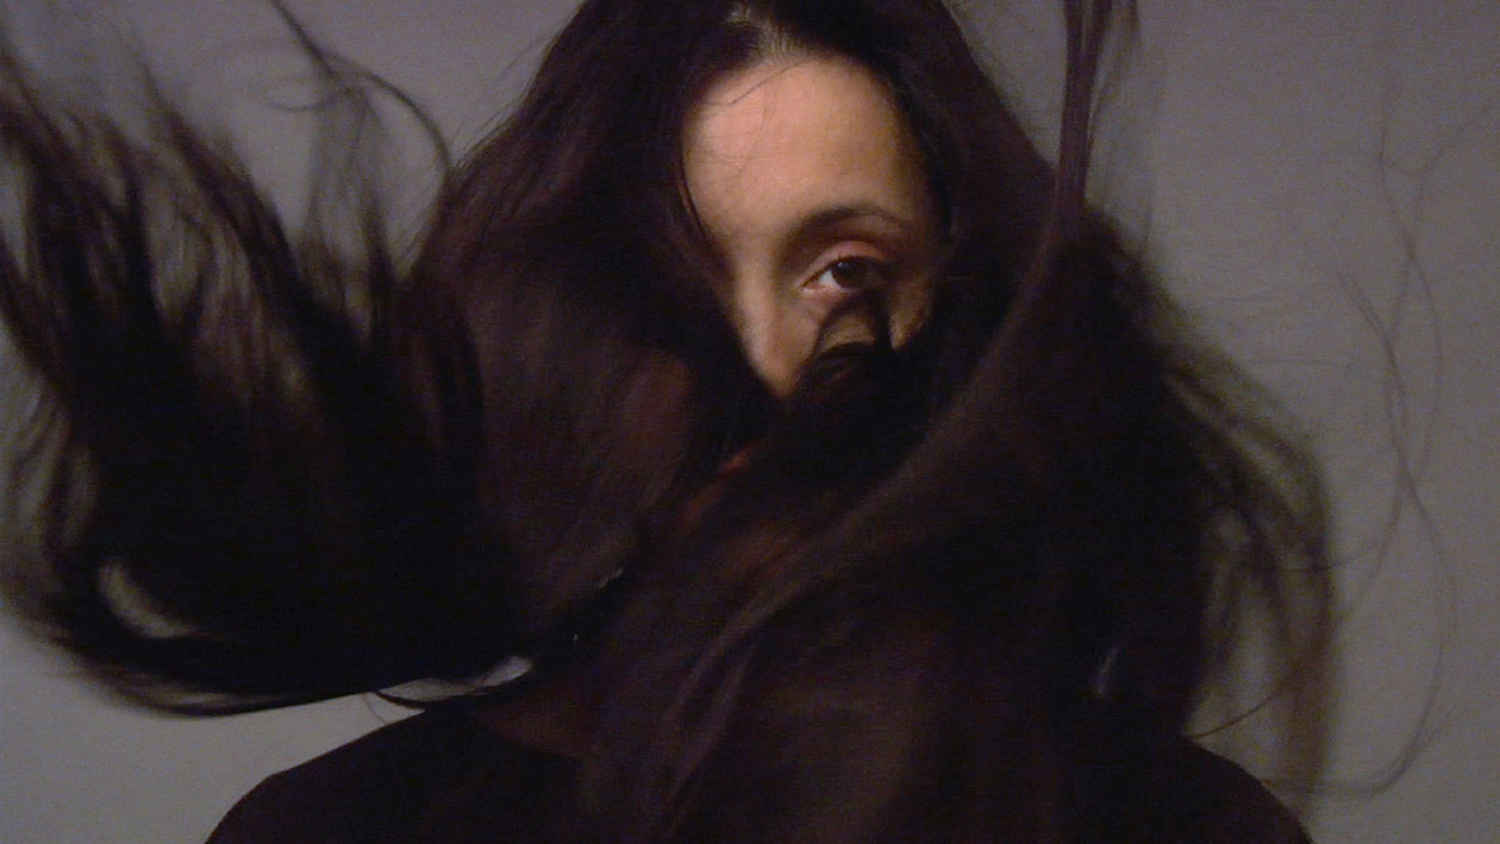 Hannu Karjalainen: stillkuva teoksesta Woman with Dark Hair, 2007 video, 9 min 50 s